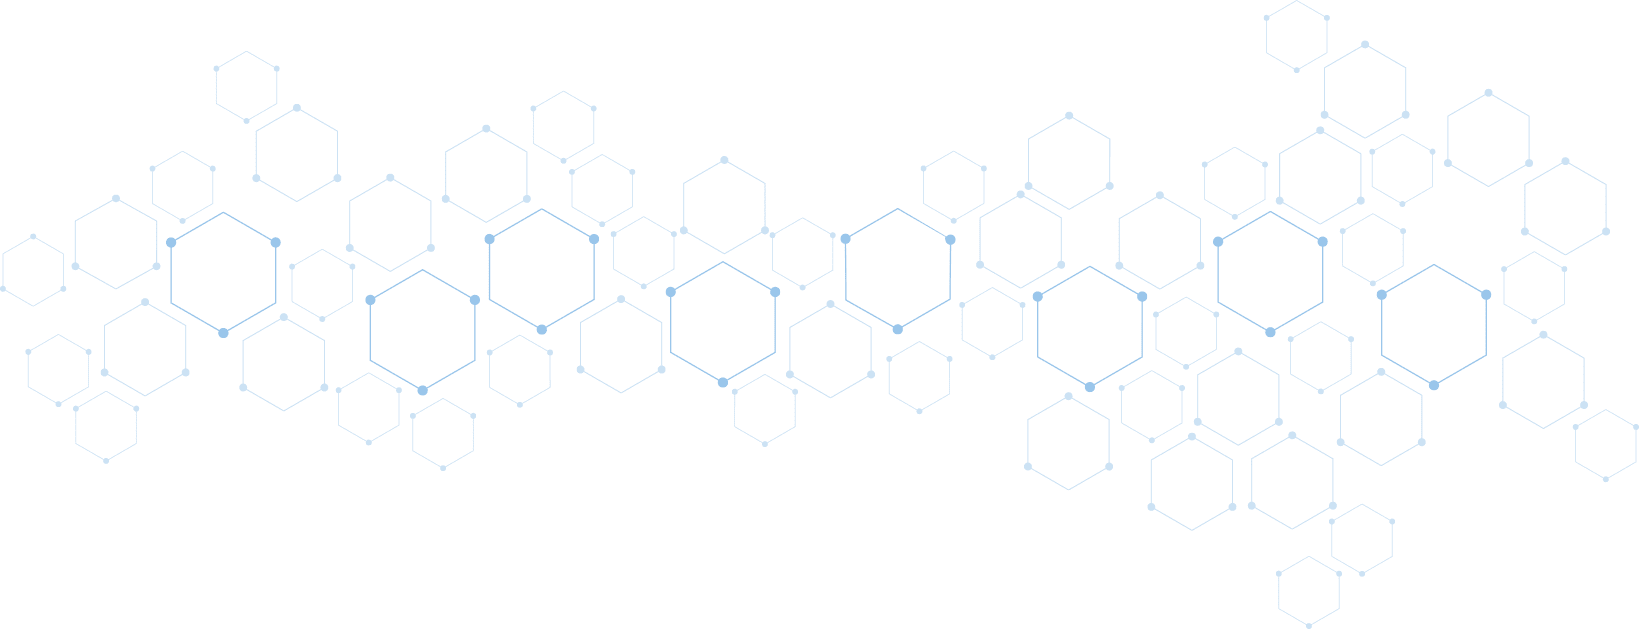 hexagon background image